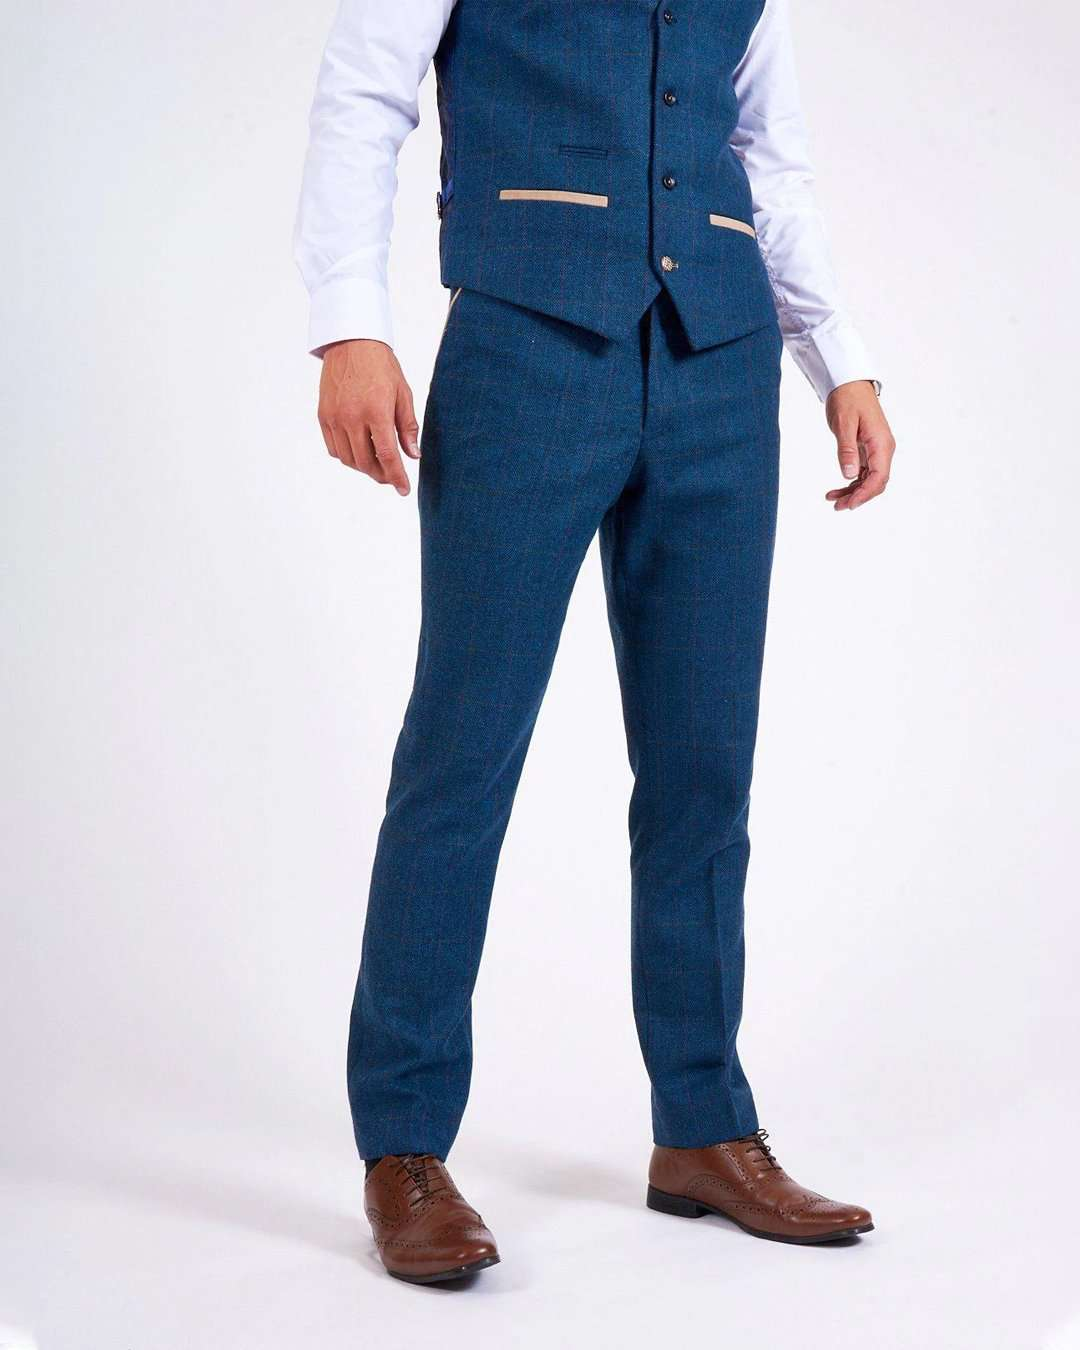 MARC DARCY Dion Tweed Trousers - Revolver Menswear Bawtry